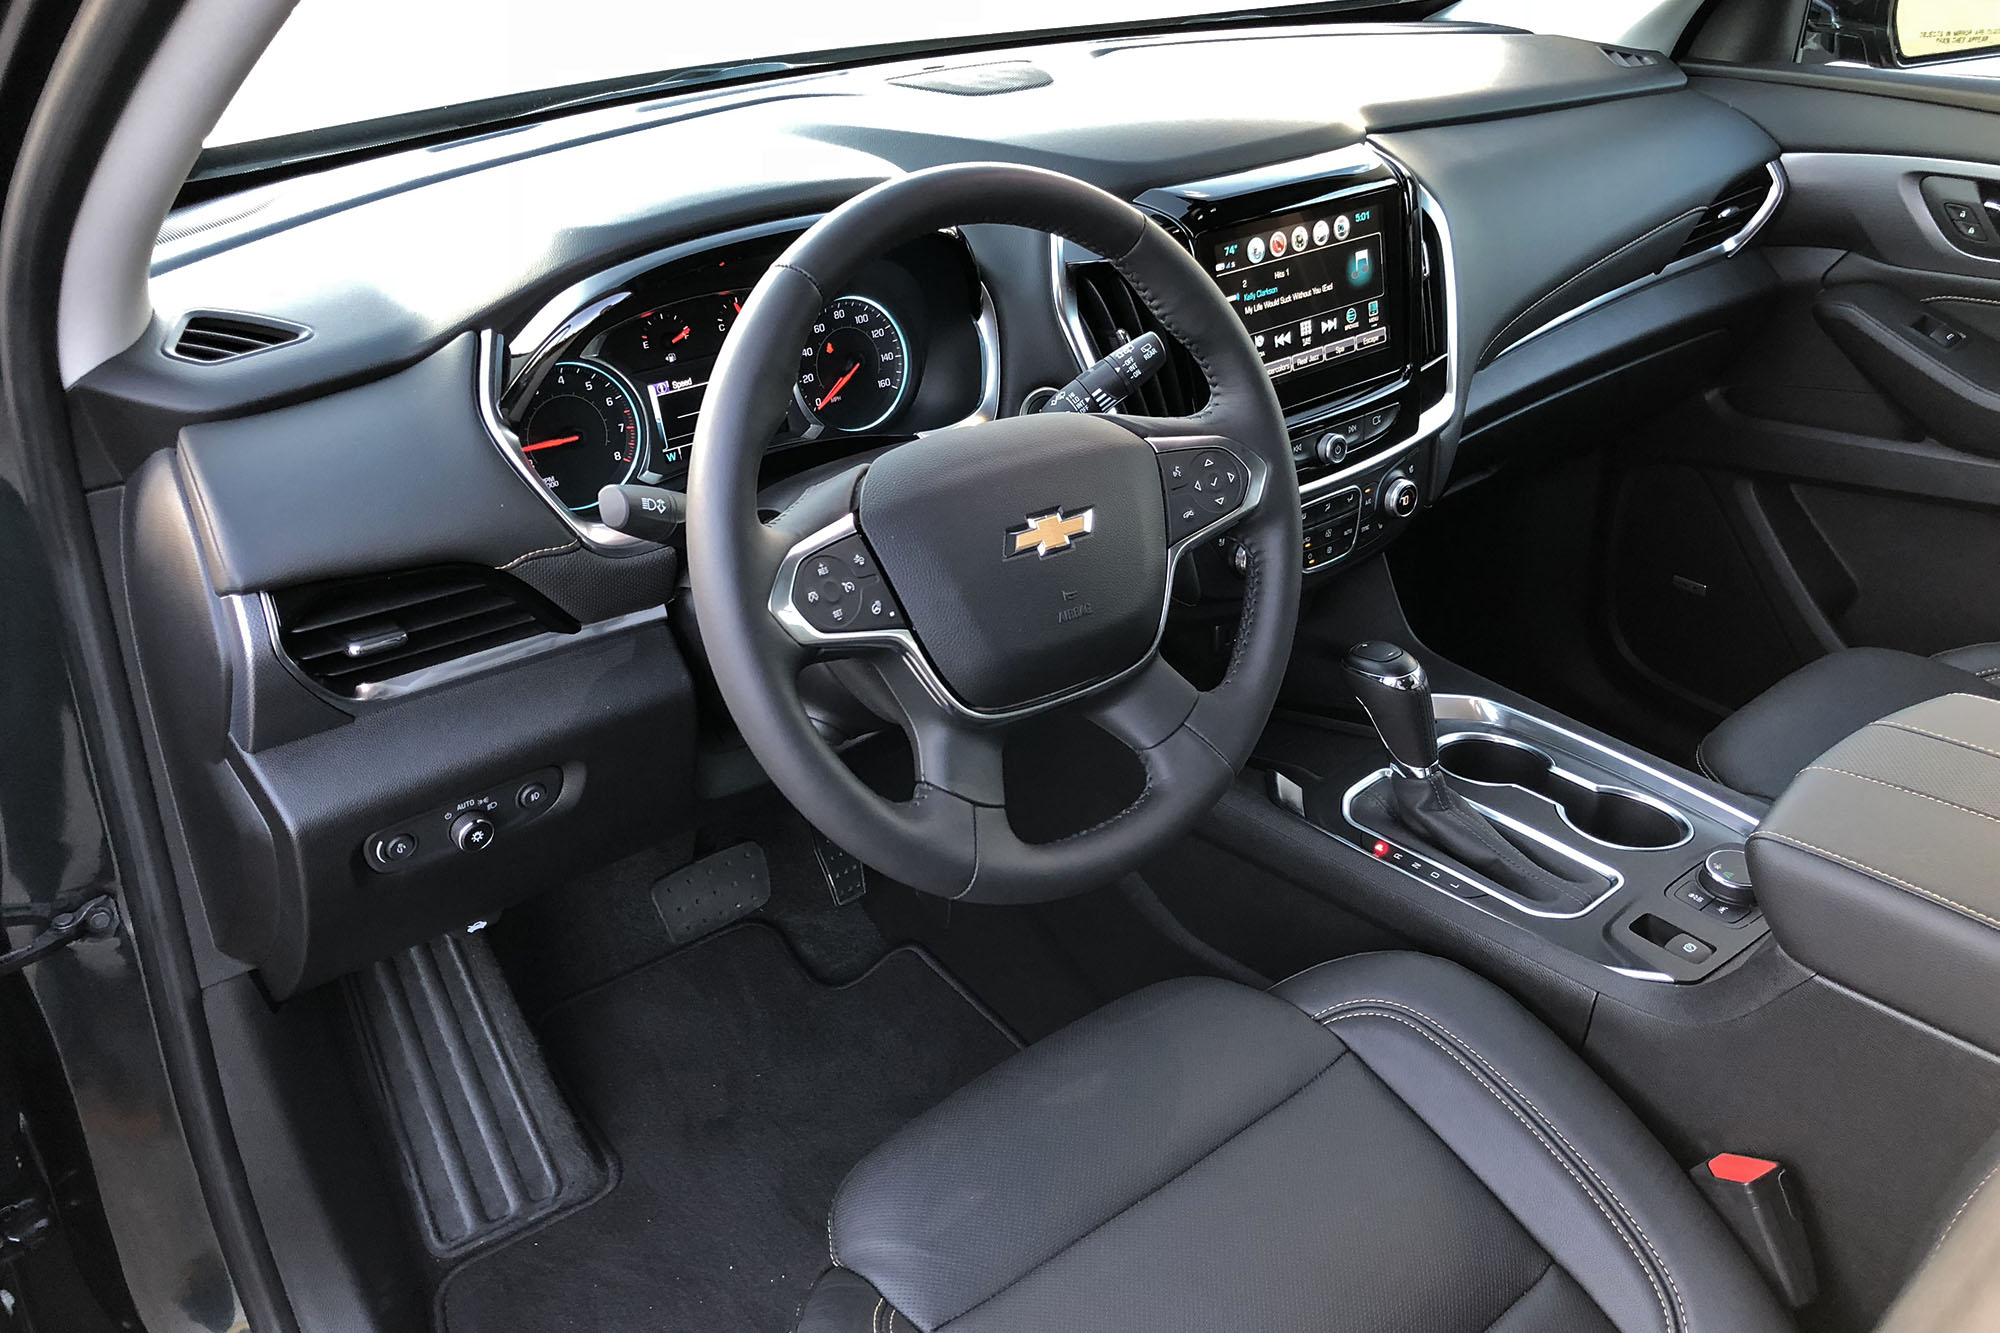 wrg 8370] 2012 chevy cruze steering column wiring diagr 2012 chevrolet cruze used car review